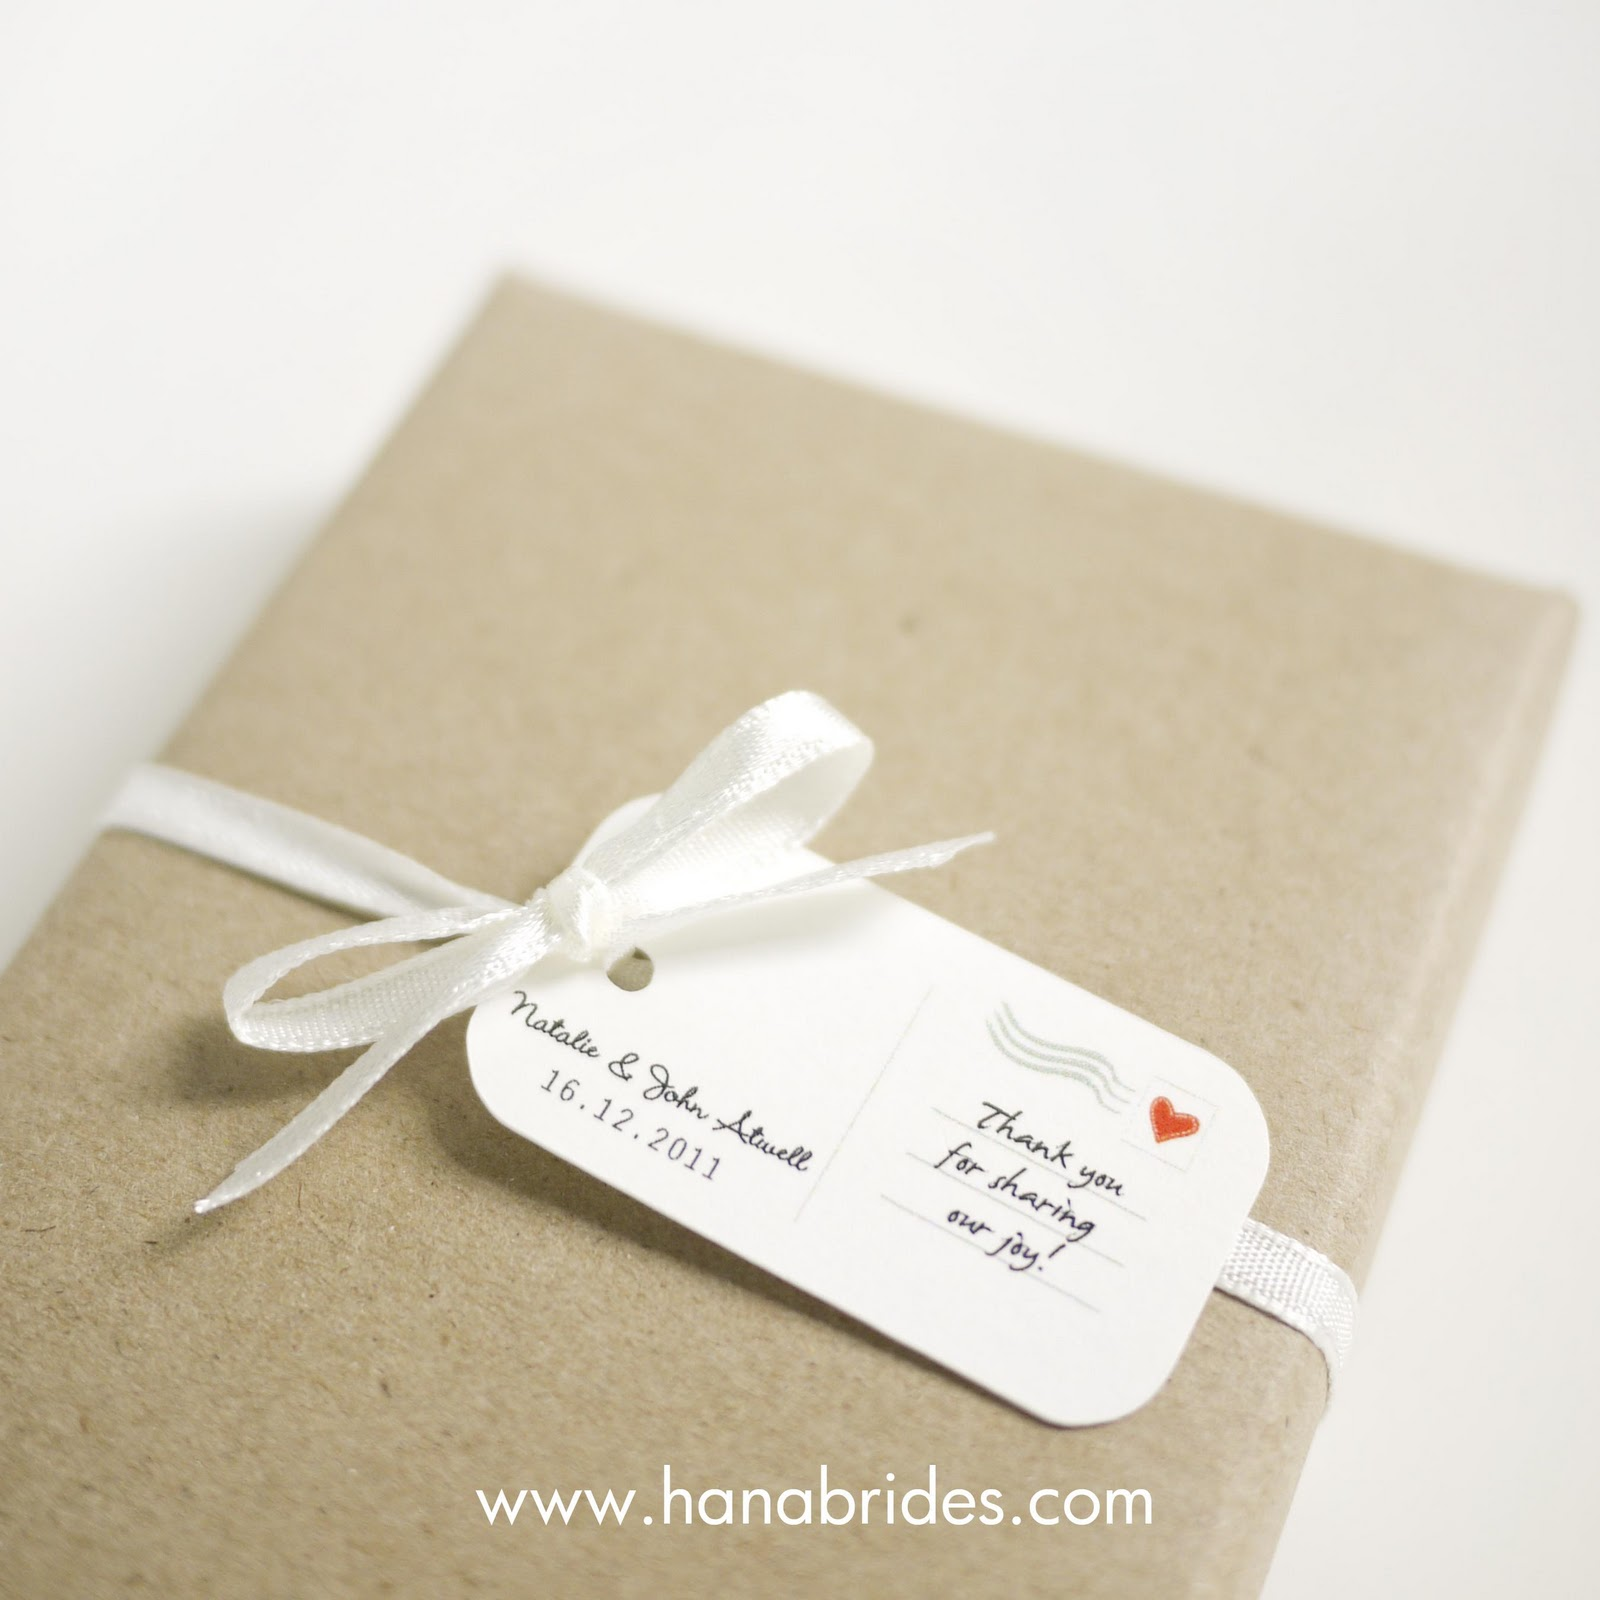 Hanabrides - Singapore Wedding Ring Pillow, Magnet Favors, Gift Tags ...